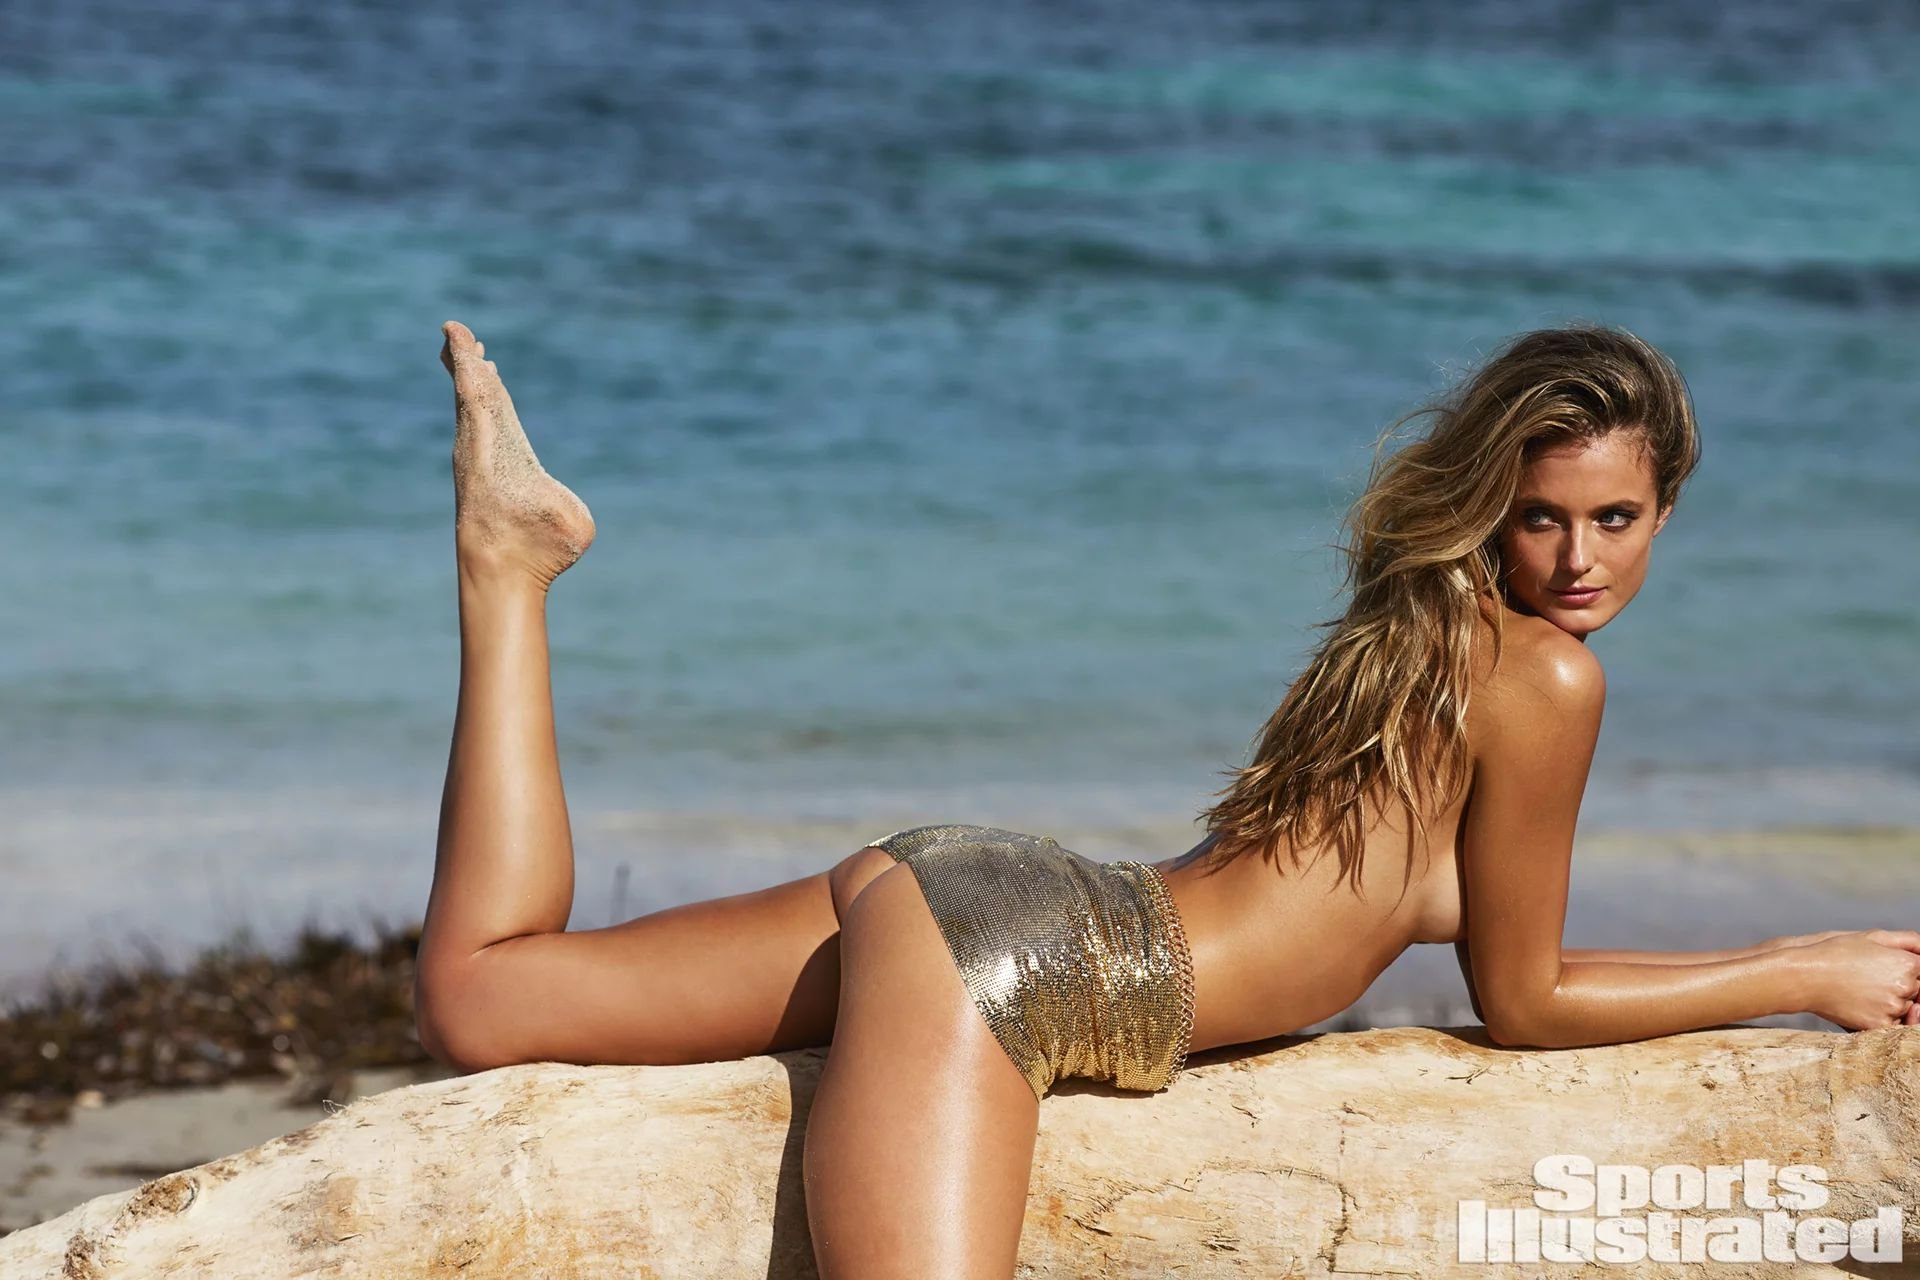 Kate bock looks sexy and hot in the sports illustrated swimwear